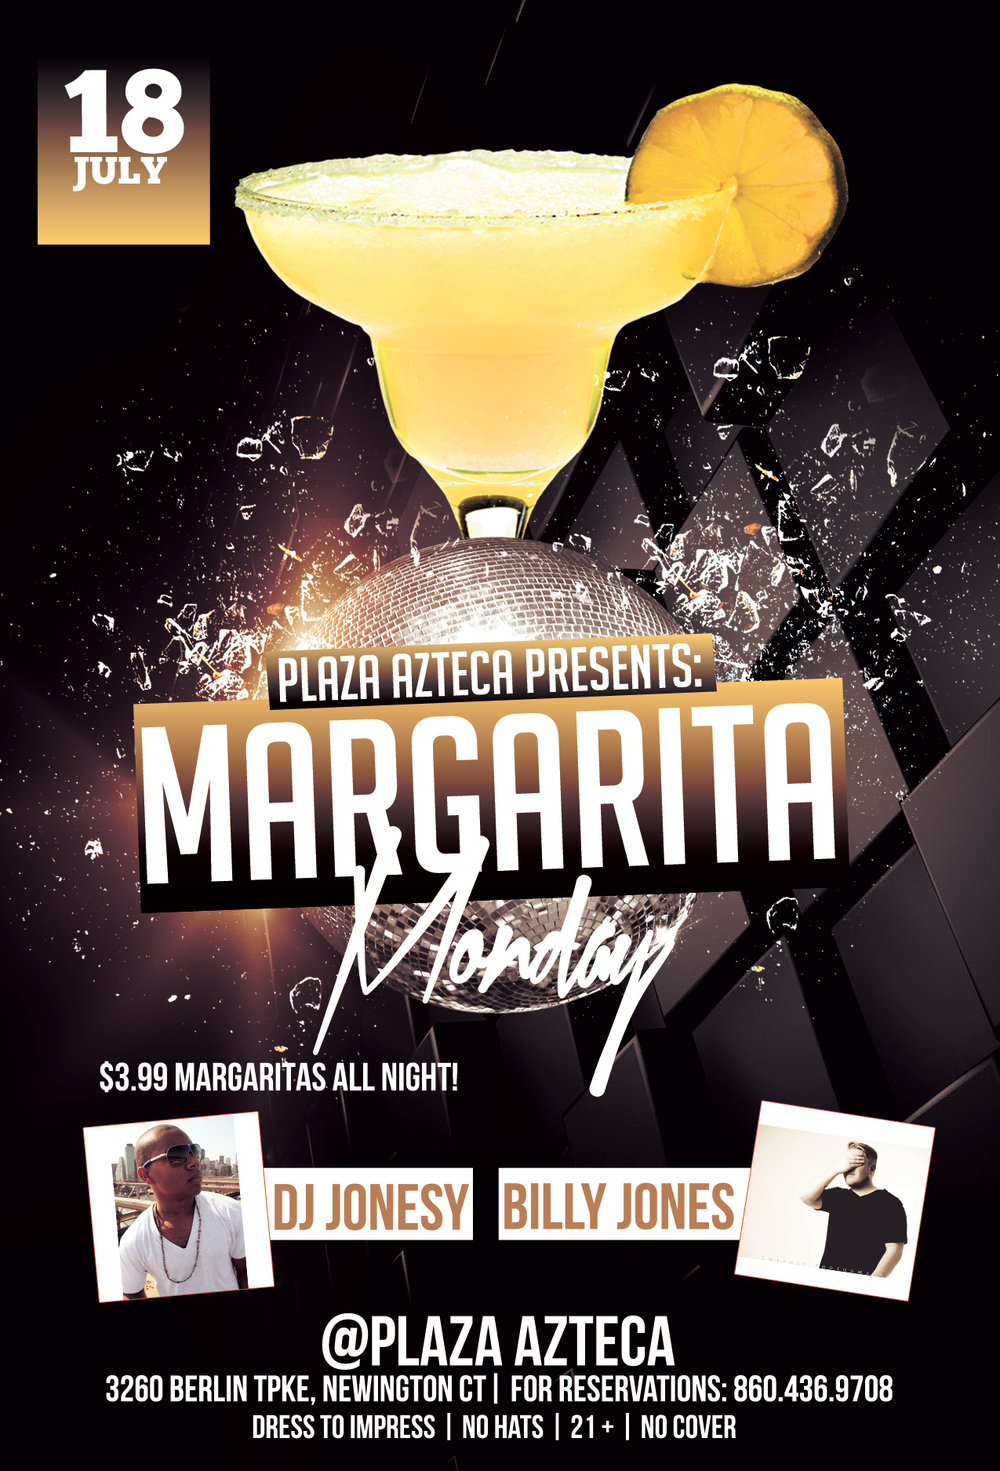 Monday, July 18th join me at Plaza Azteca in Newington, CT for Margarita Monday with music by Billy Jones & yours truly 9pm-close.  $3.99 Margaritas all night long!  Meet me there!